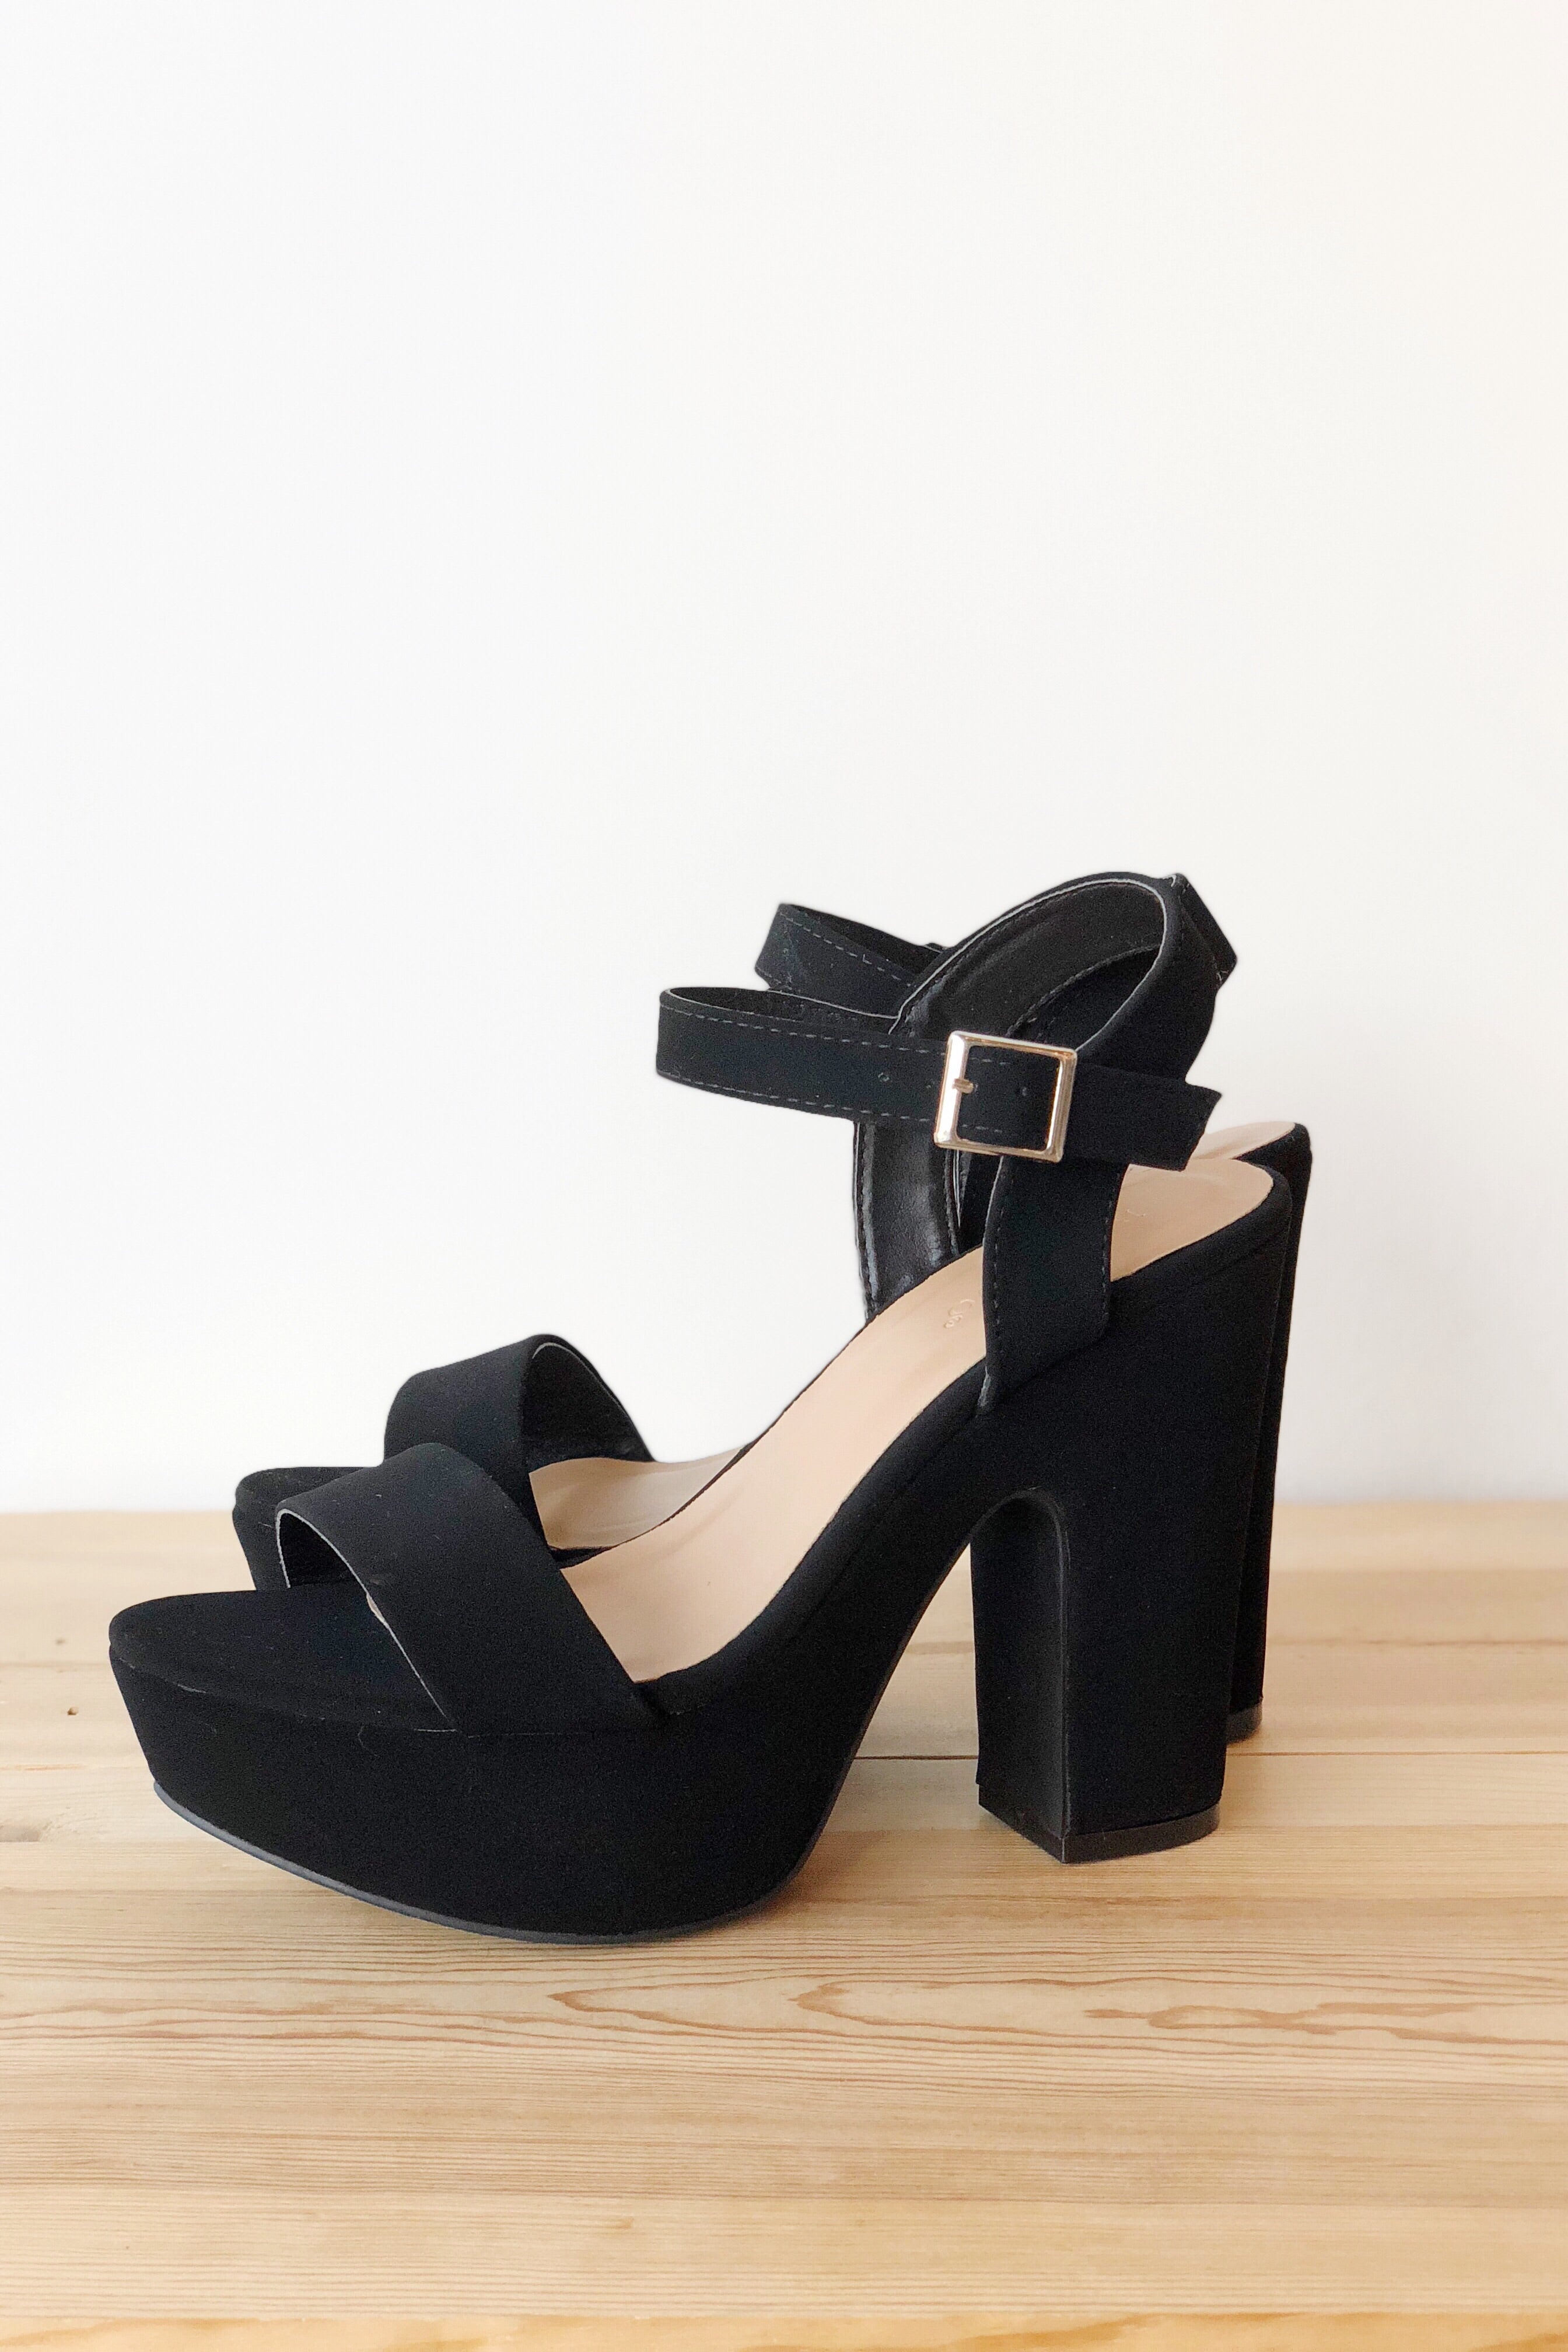 [shop name], Astounding platform